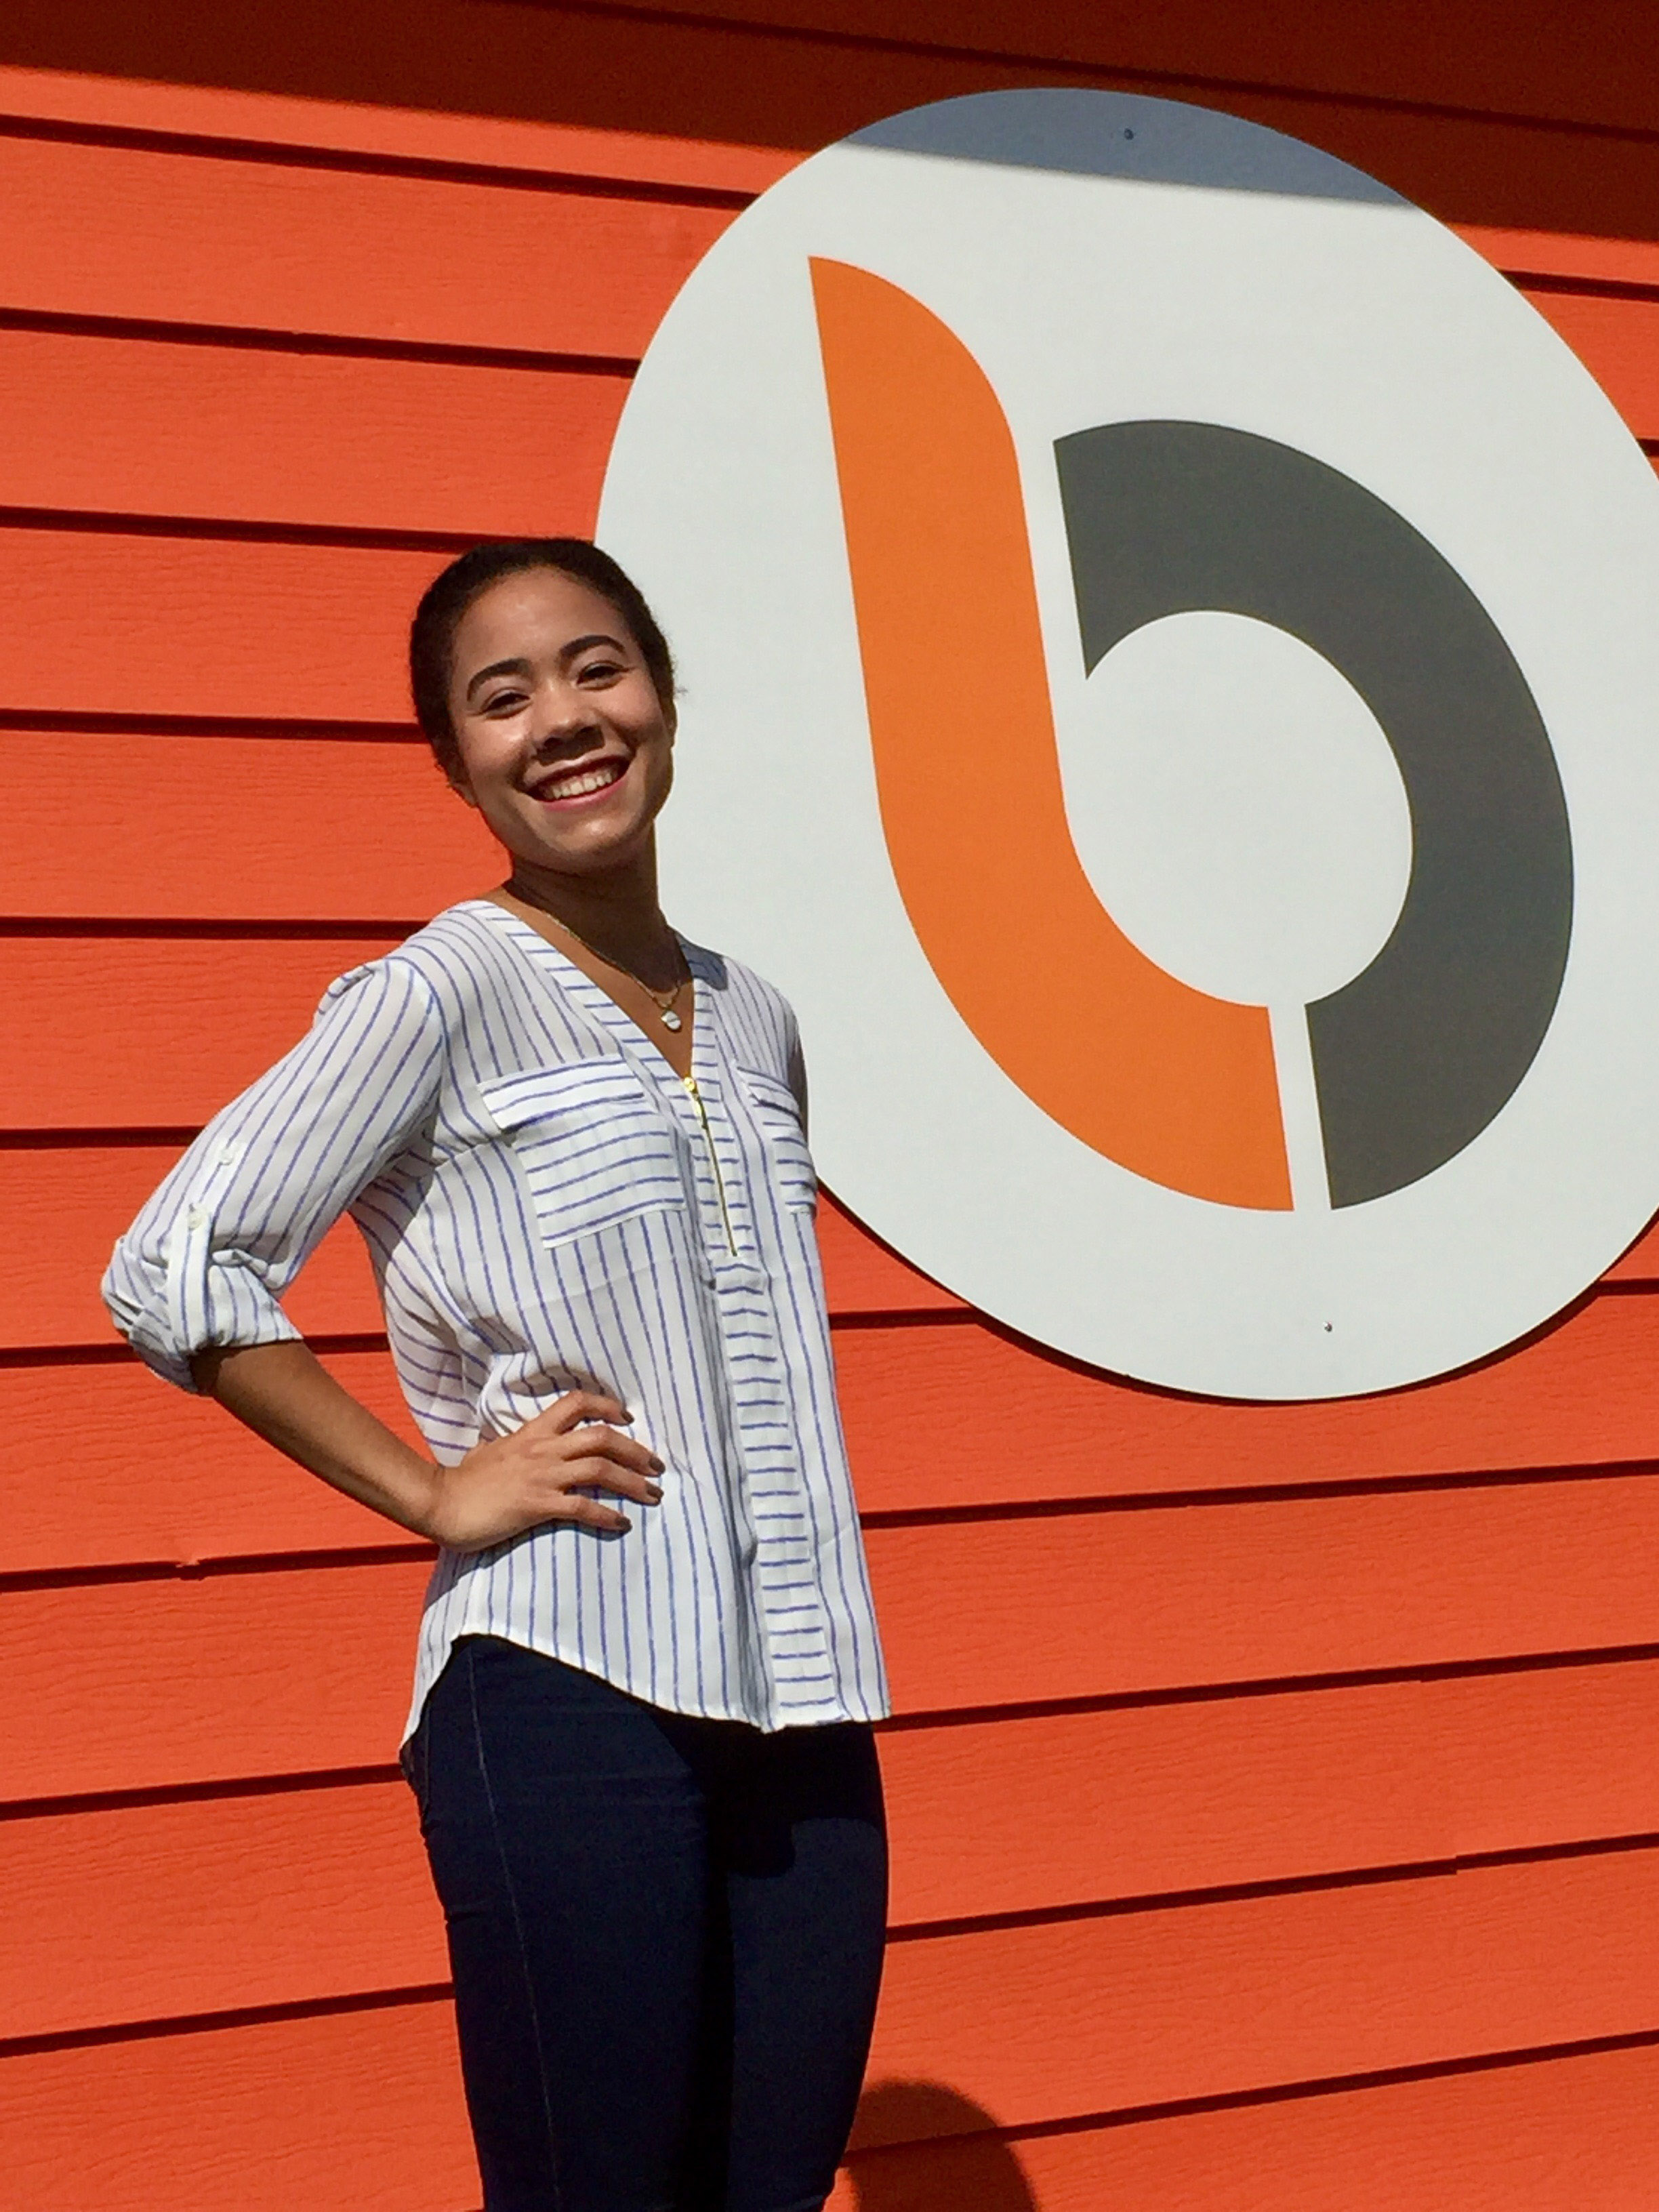 Intern standing in front of orange wall with Burkhart Marketing logo on it